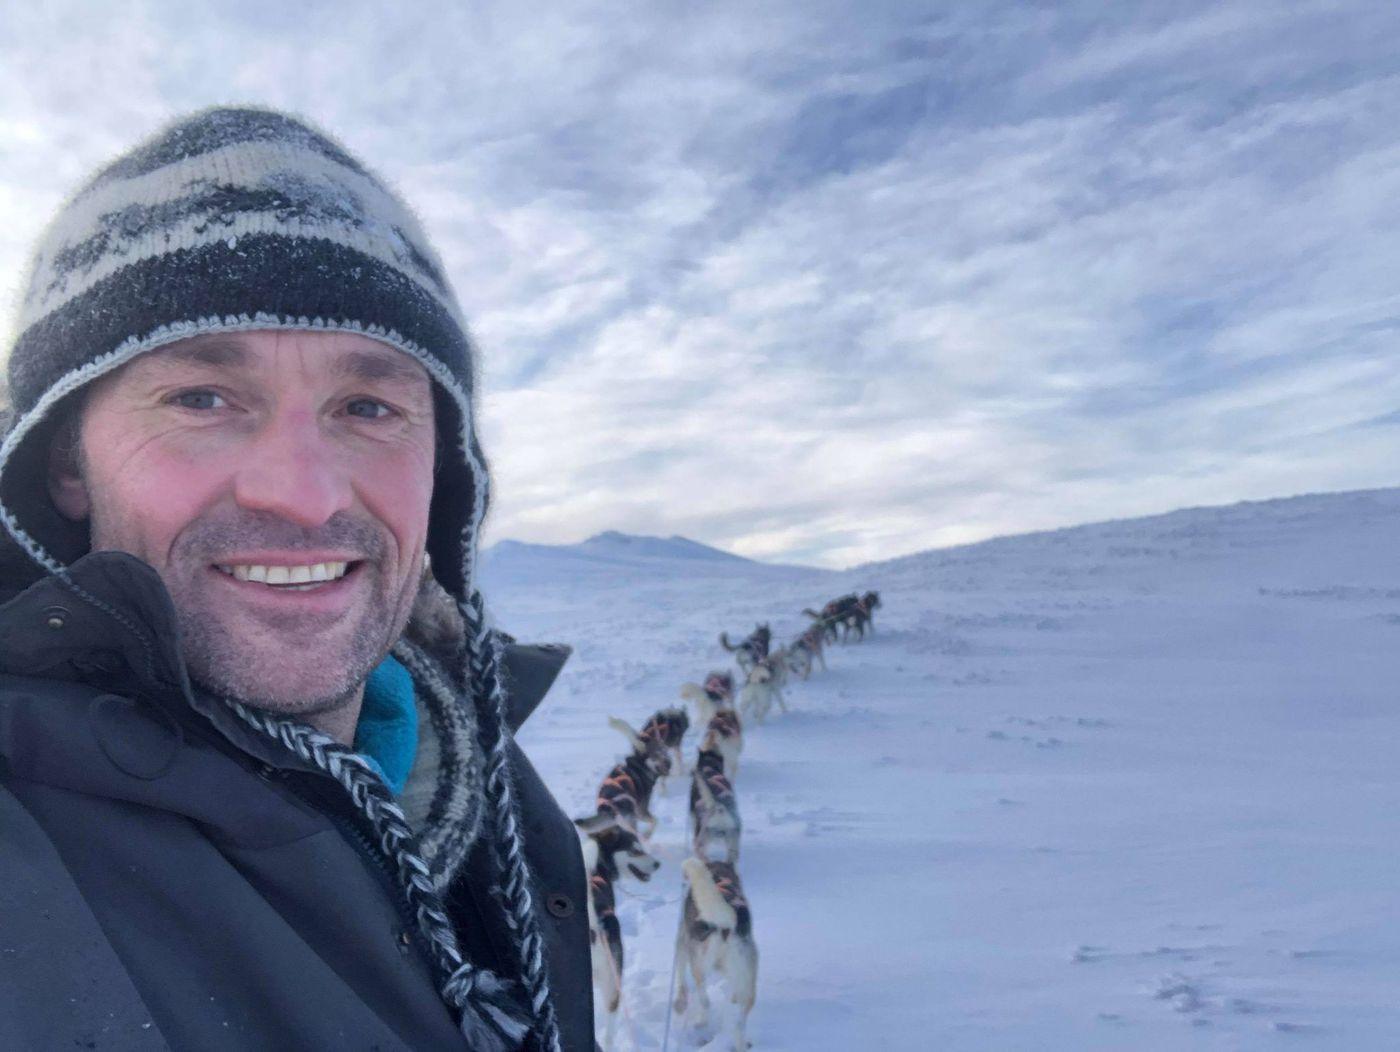 Thomas Waerner won the 2020 Iditarod and then spent months stranded in Alaska by pandemic travel restrictions. Now he's back home, mushing and planning his 2021 races -- which won't involve a trip to Alaska for the Iditarod. (Photo by Thomas Waerner)